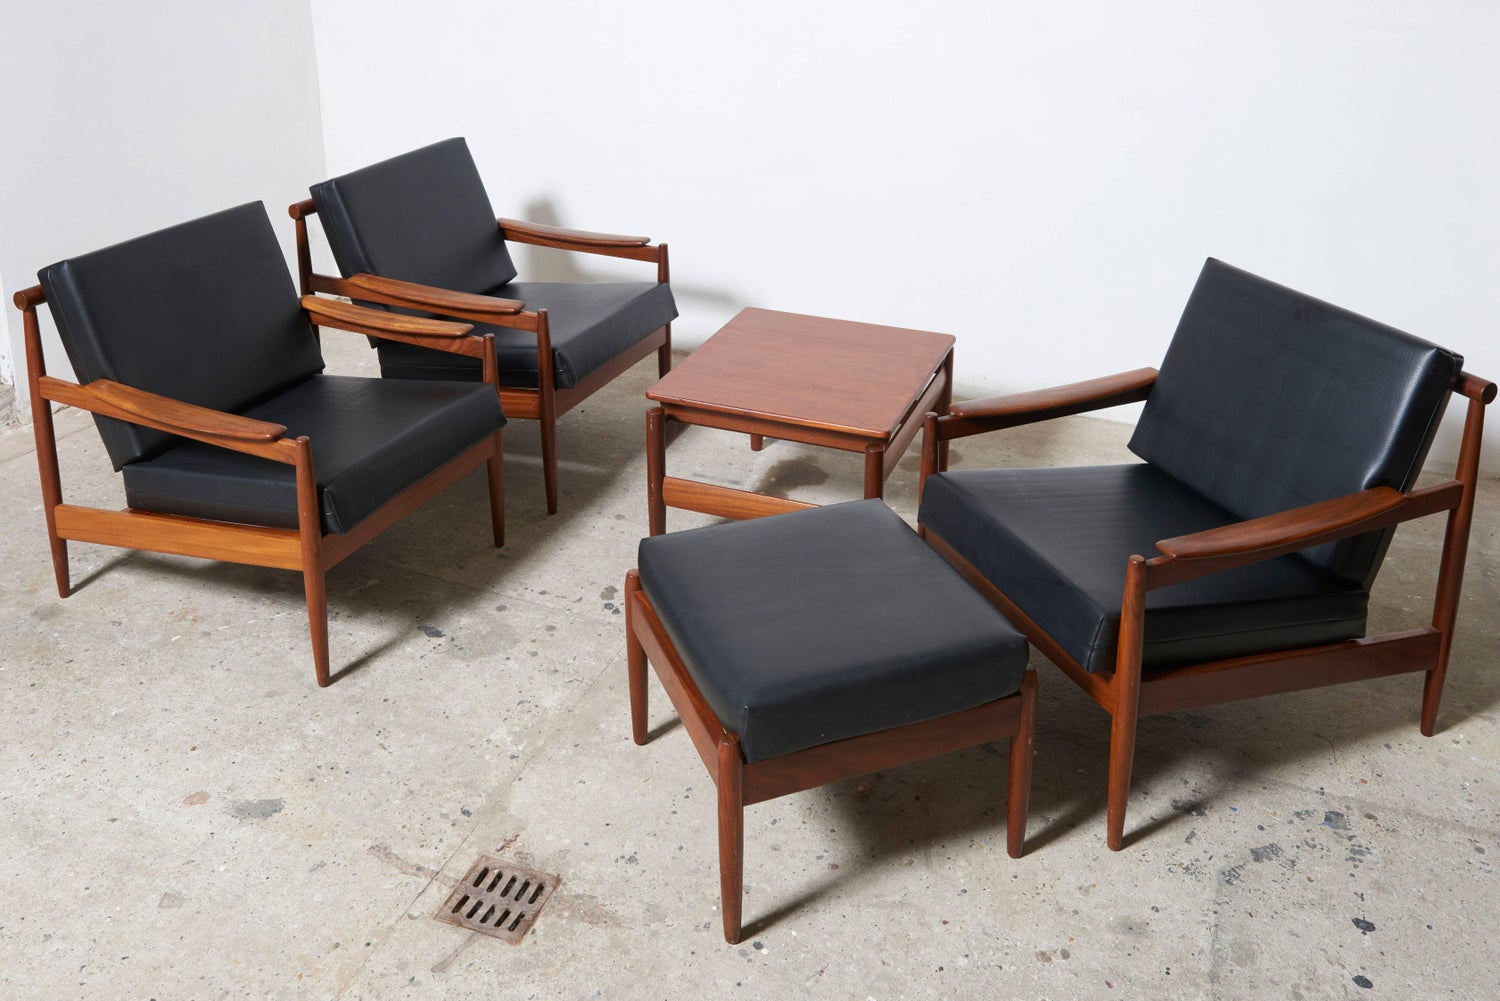 https://a.1stdibscdn.com/jos-de-mey-livingroom-set_-easy-armchairs_lounge-chair-with-footstool-for-luxus-for-sale-picture-3/archivesE/upload/f_9318/f_104724111523768909264/_AJ16706_master.jpg?width=1500